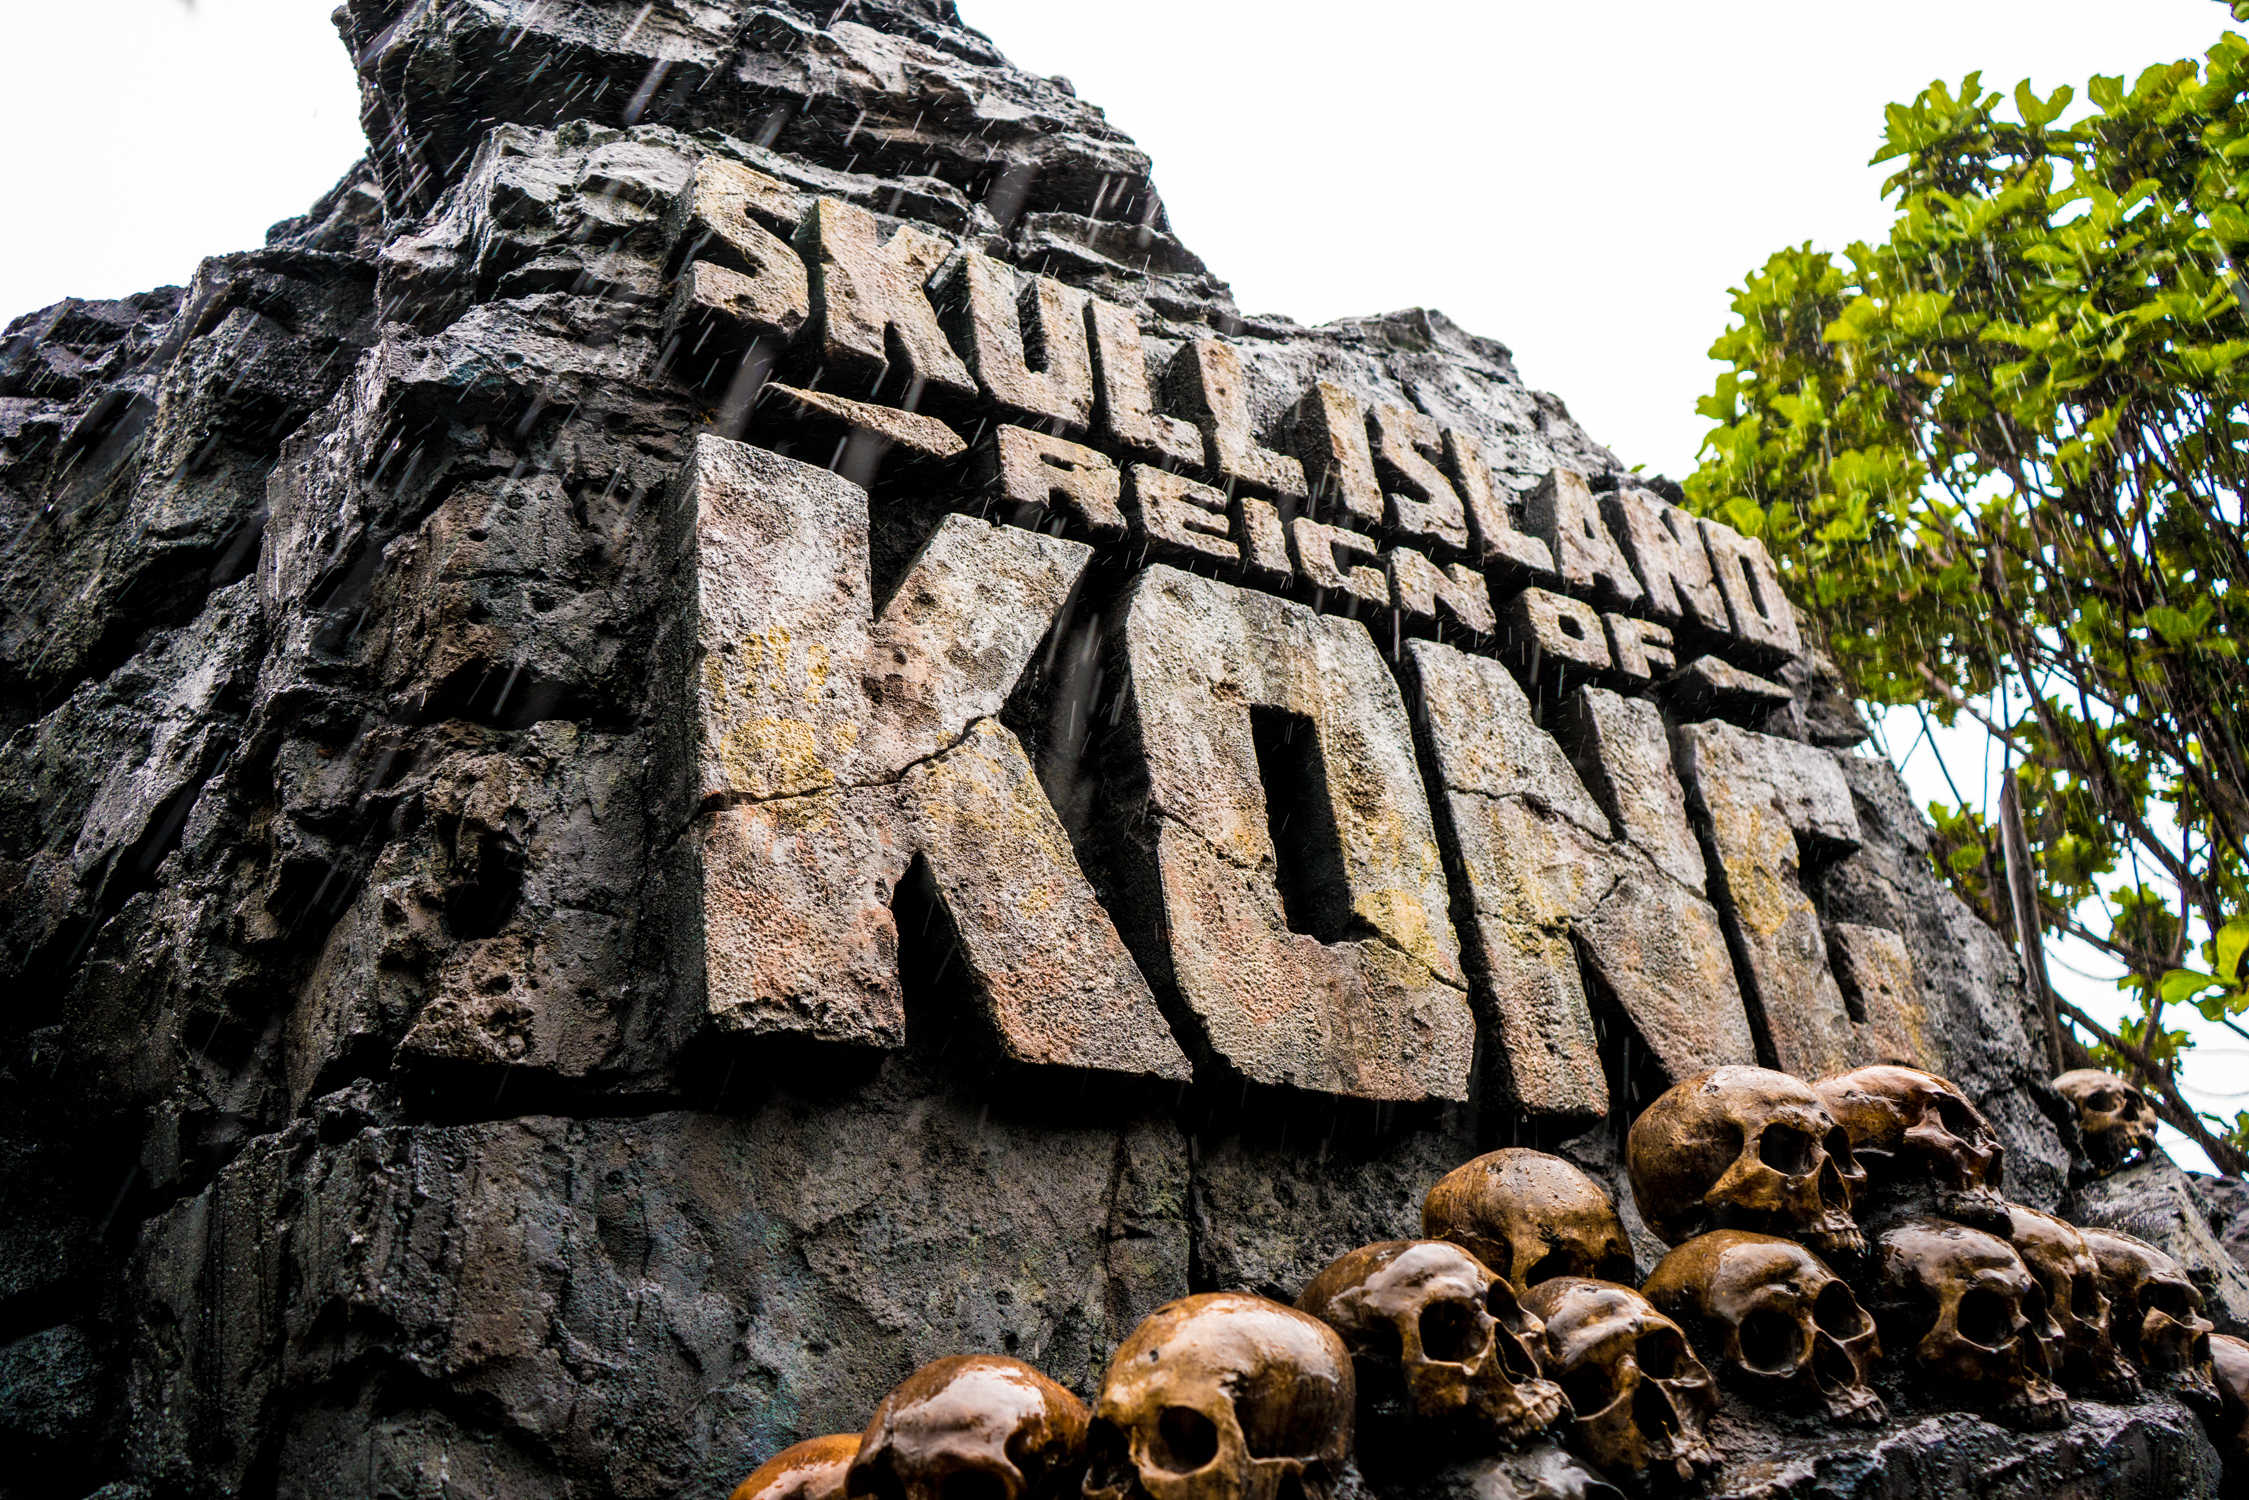 Skull Island: Reign of Kong now soft opening at Universal's Islands of Adventure